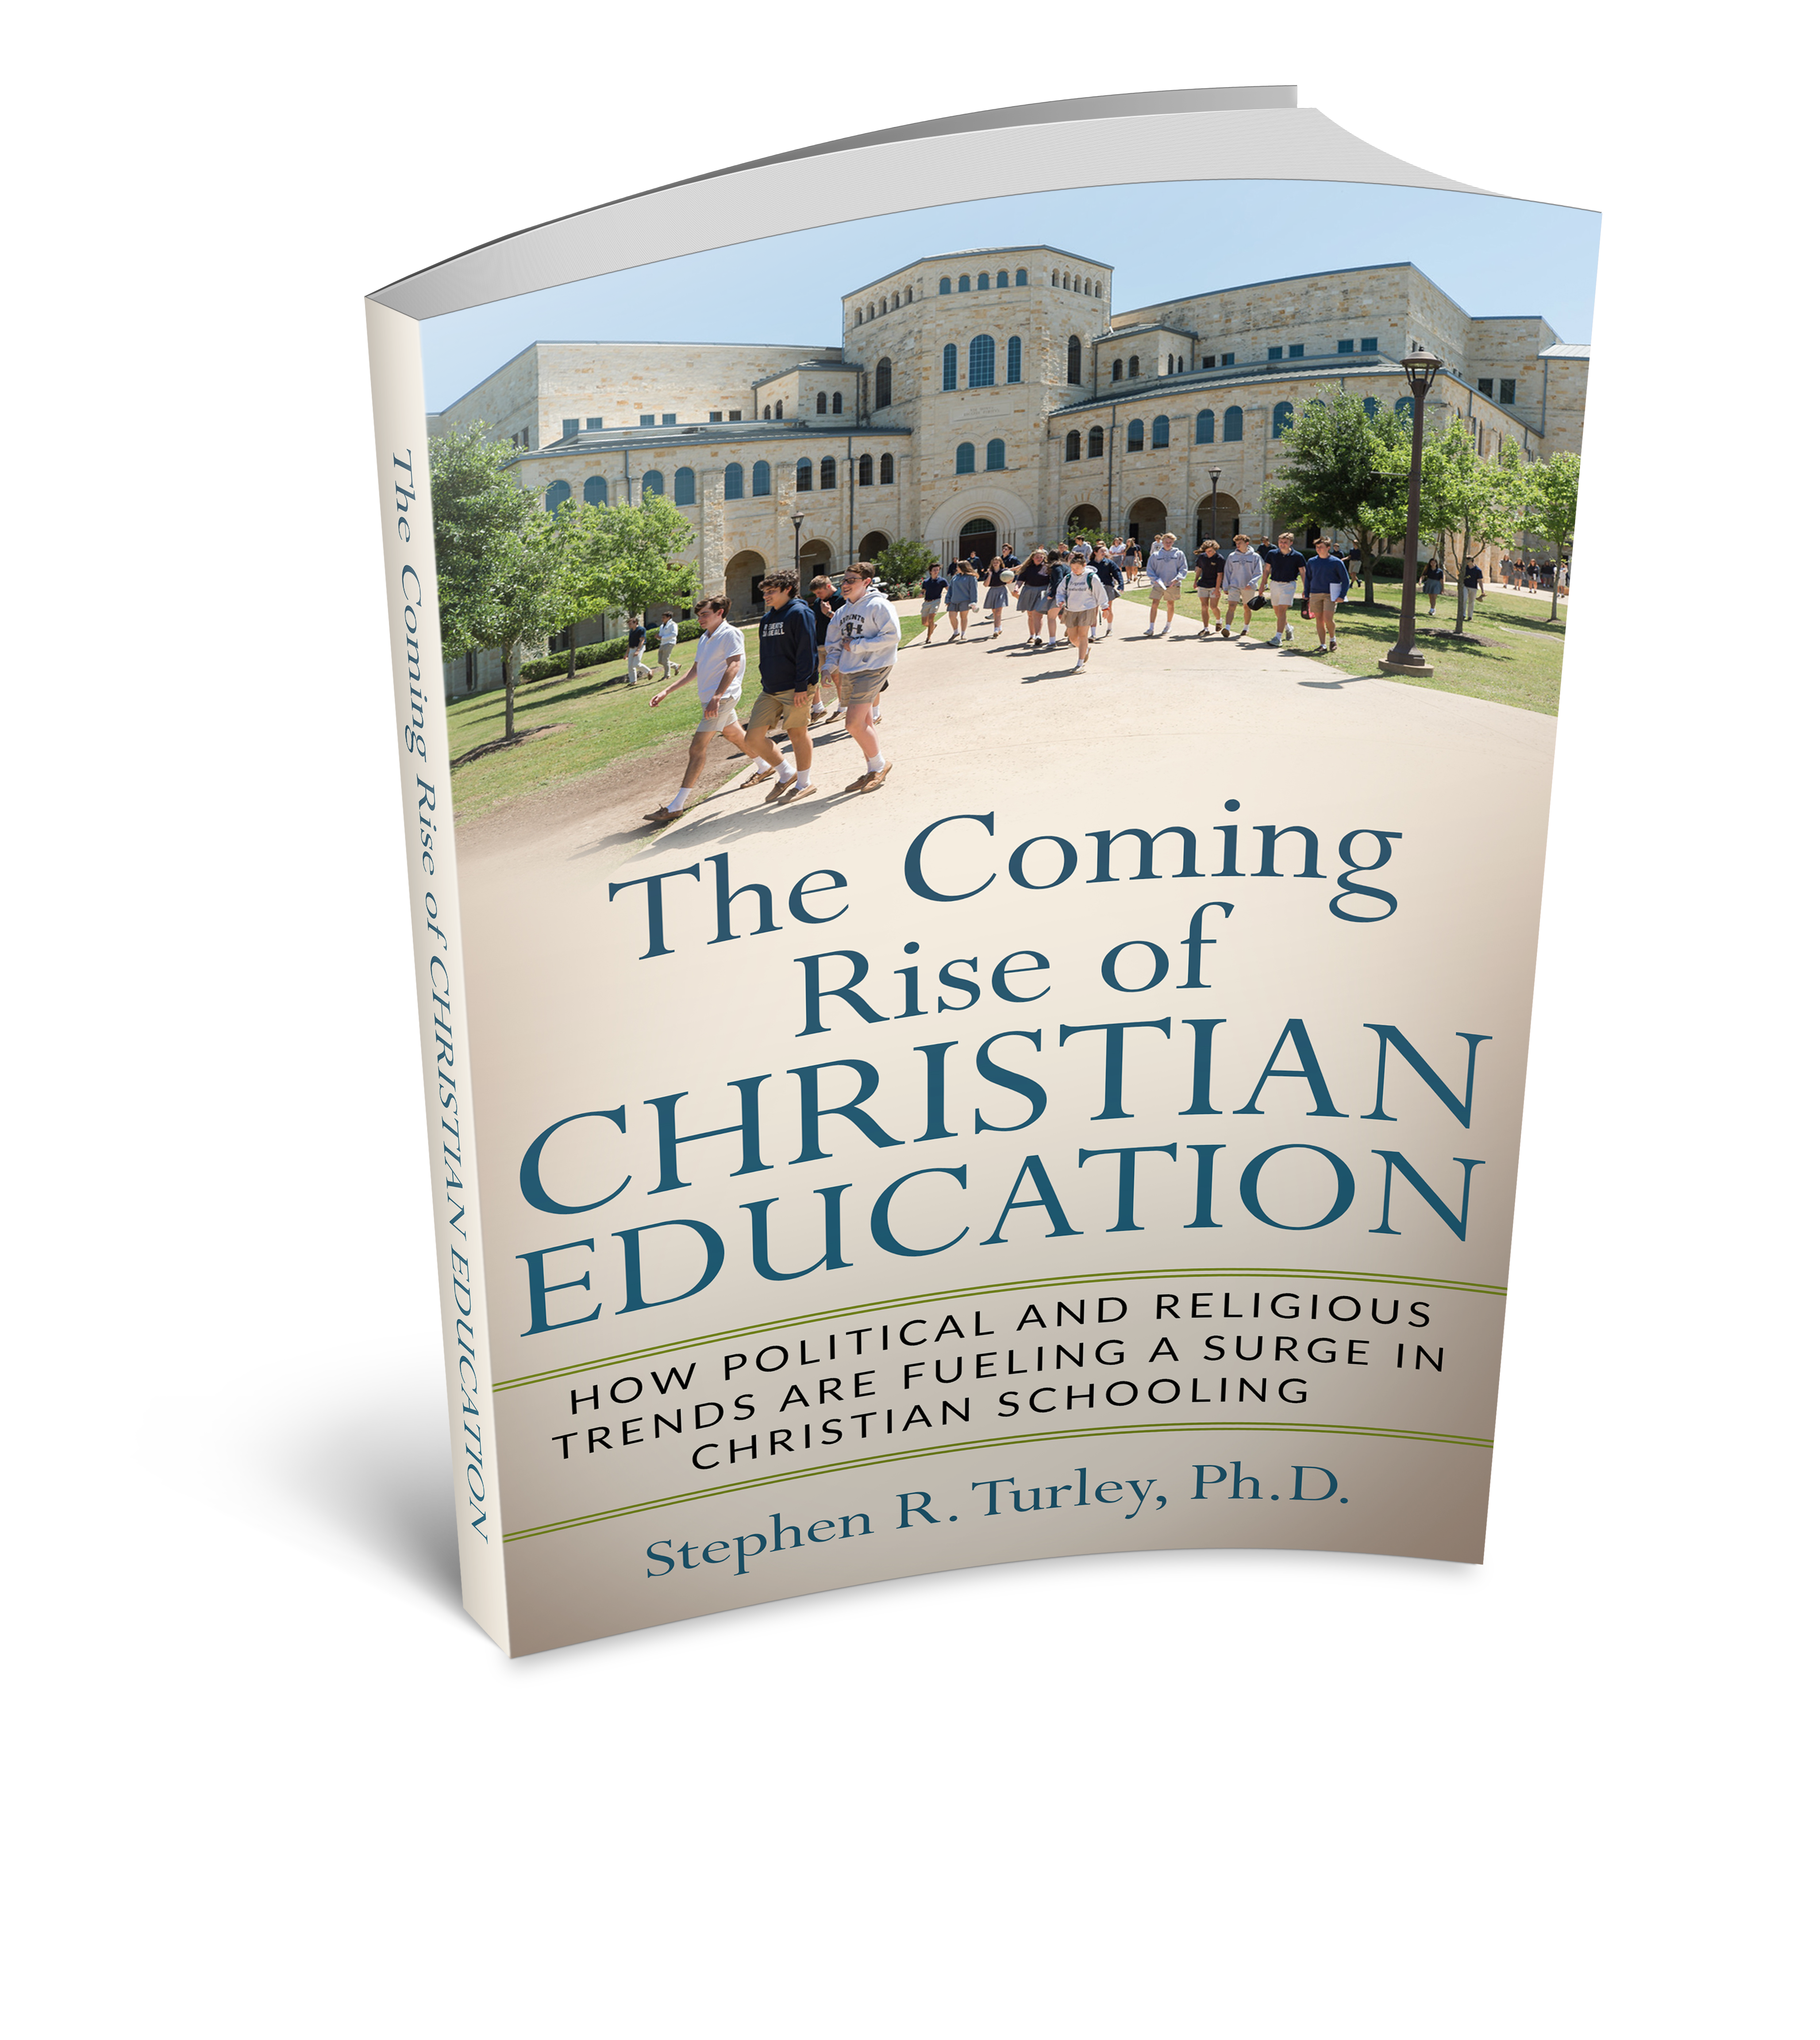 Coming Rise of Christian Education - 3d image